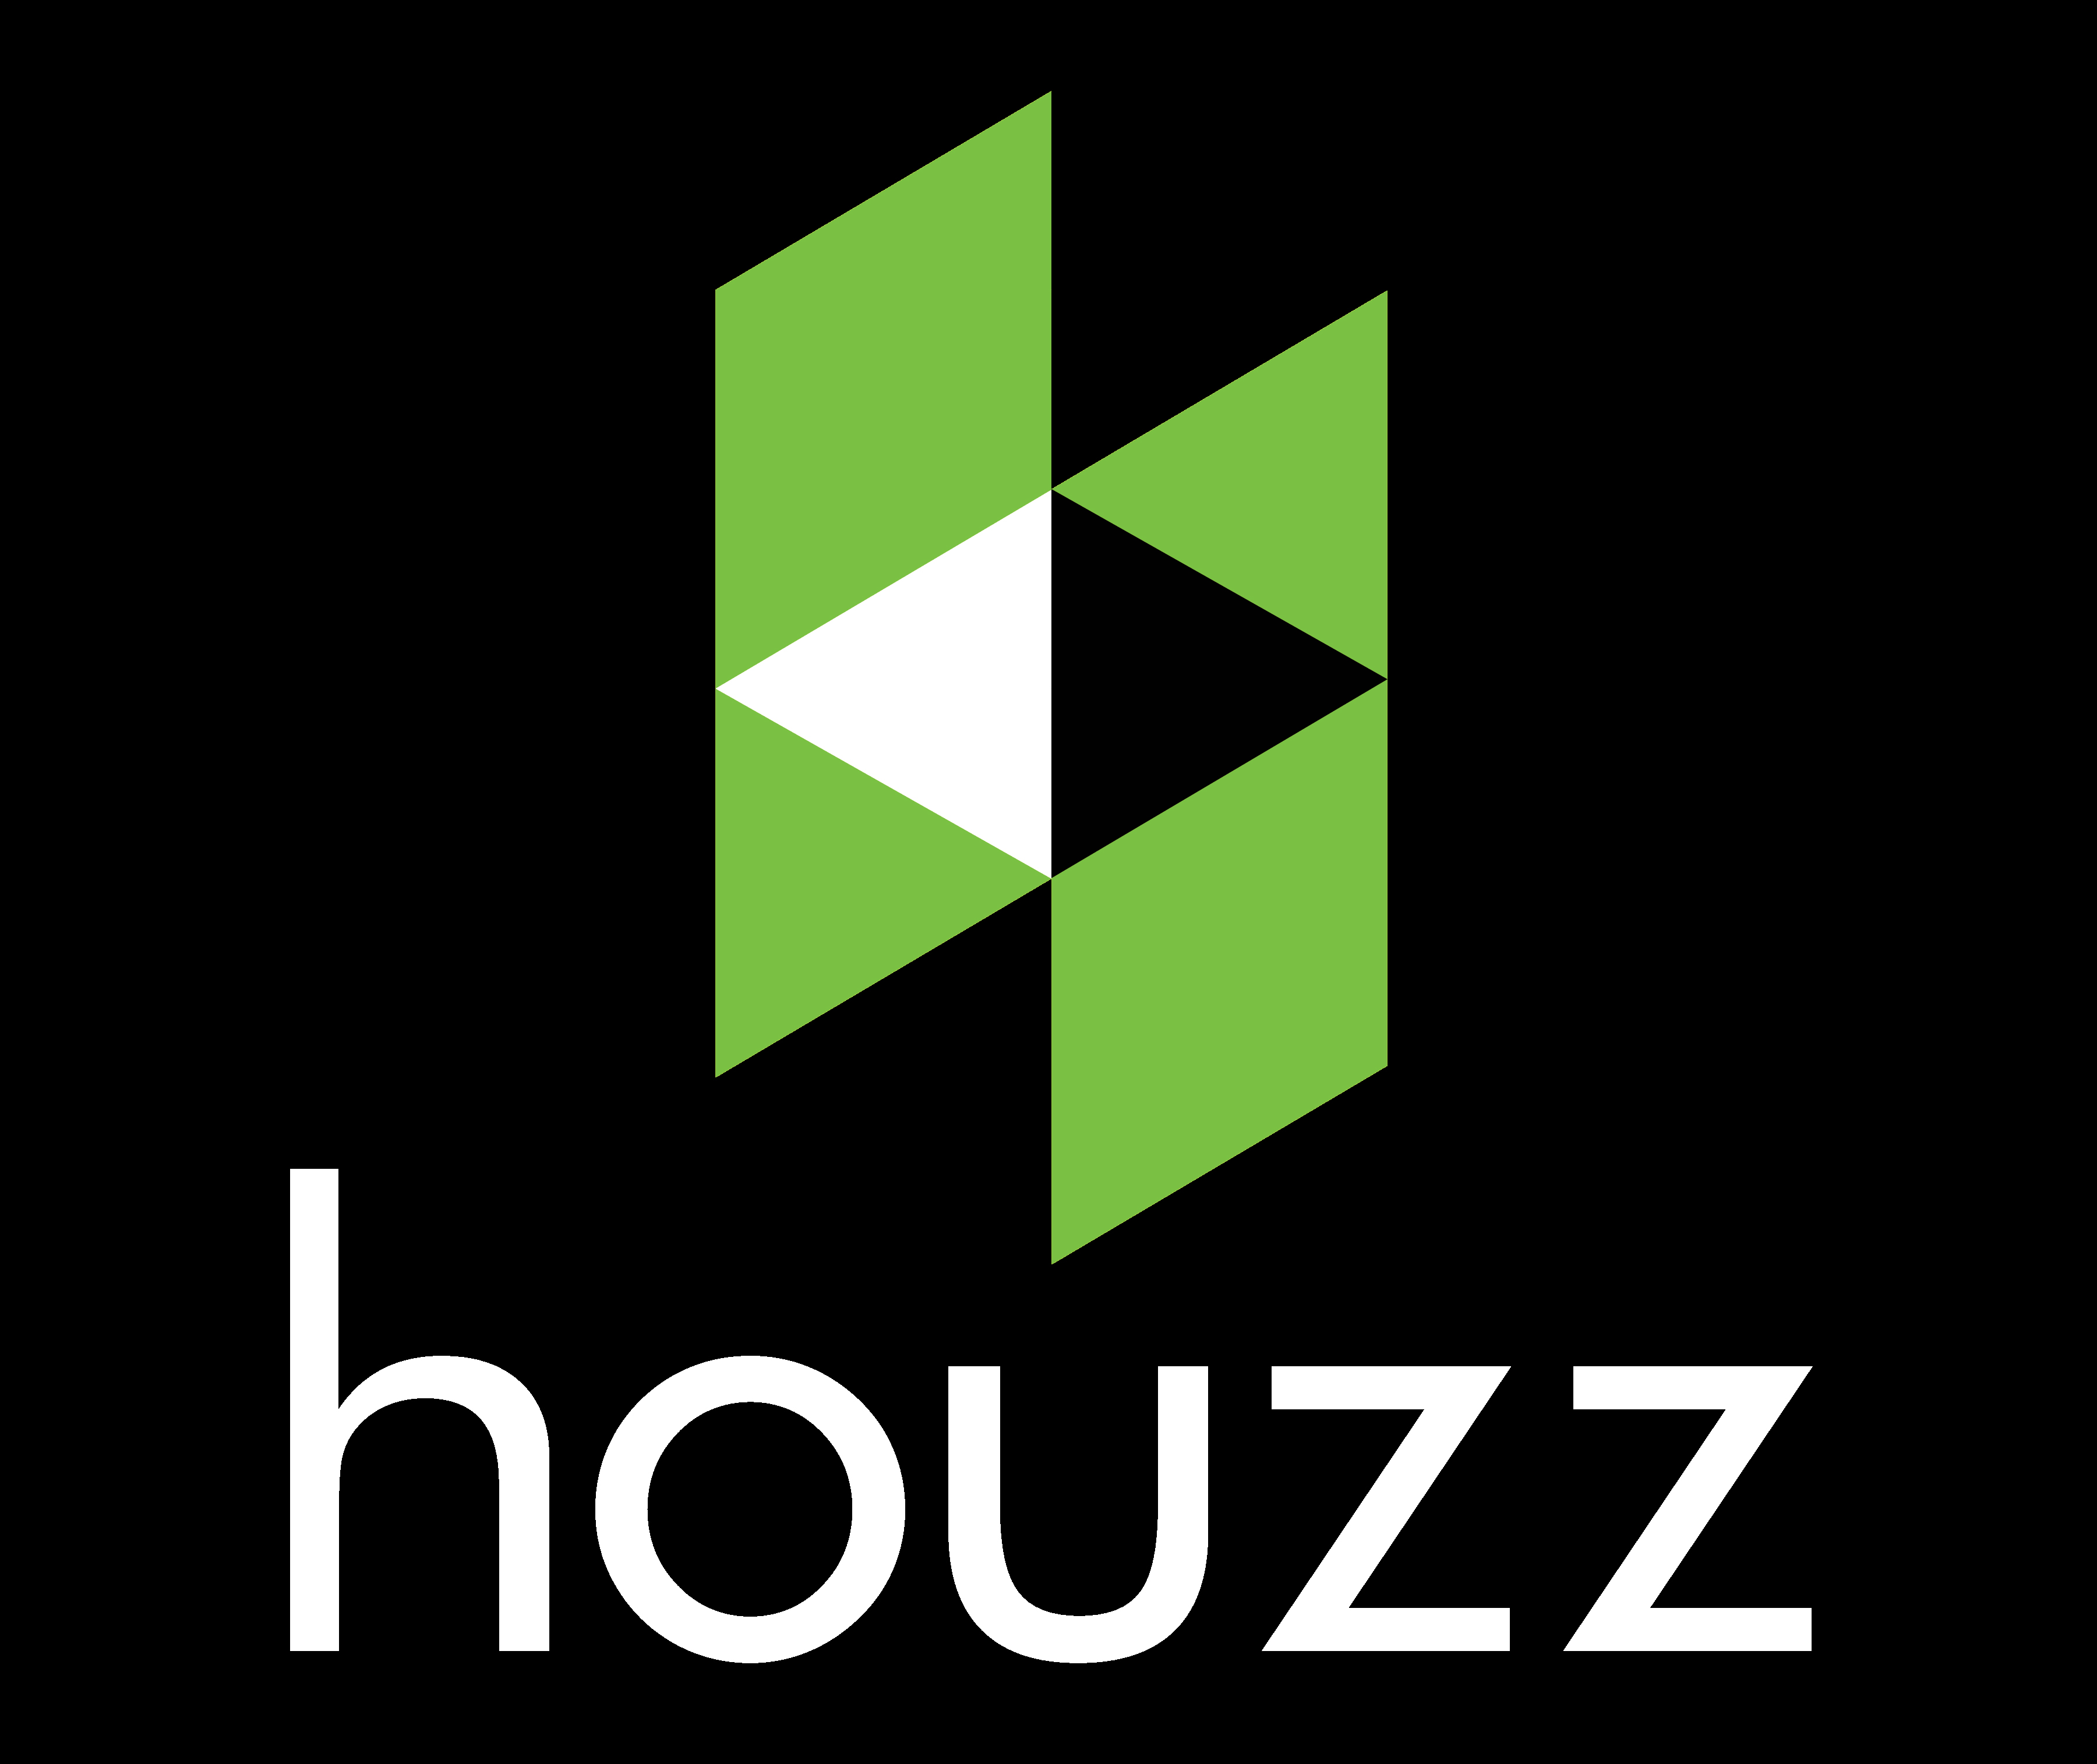 Houzz logo houzz symbol meaning history and evolution for Houzz it